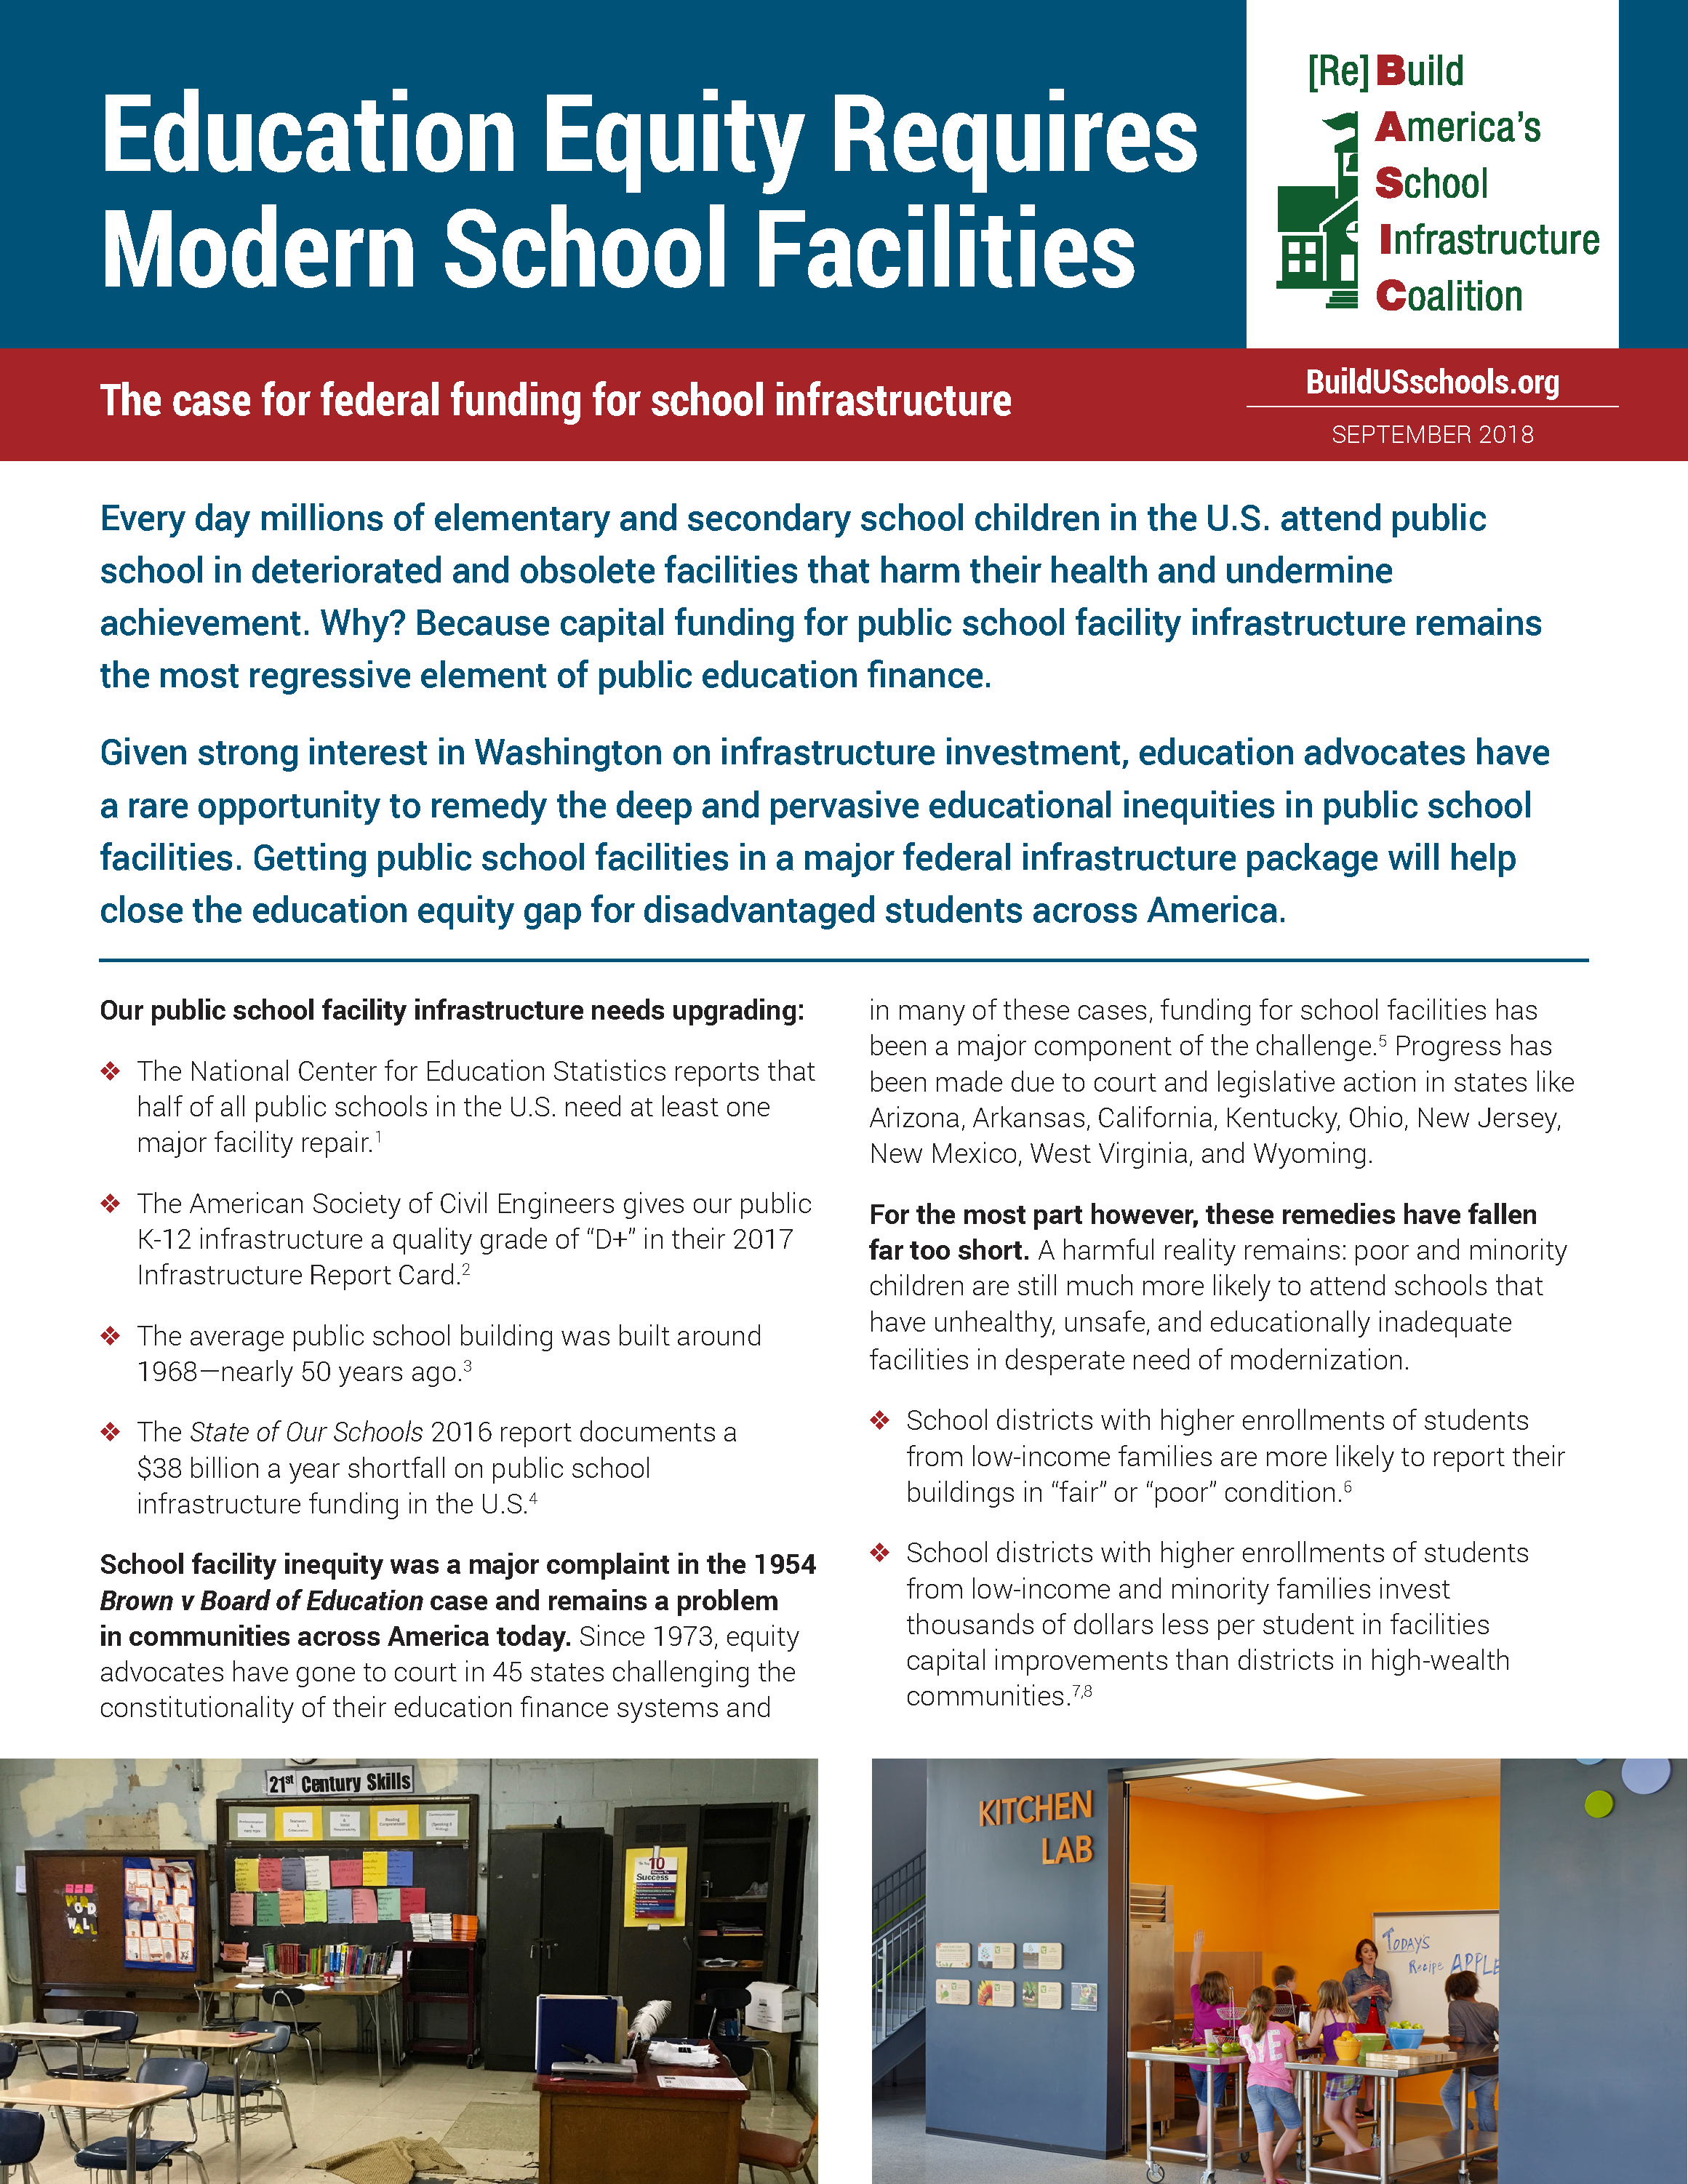 6a2be38165e EDUCATION EQUITY REQUIRES MODERN SCHOOL FACILITIES: THE CASE FOR FEDERAL  FUNDING FOR SCHOOL INFRASTRUCTURE